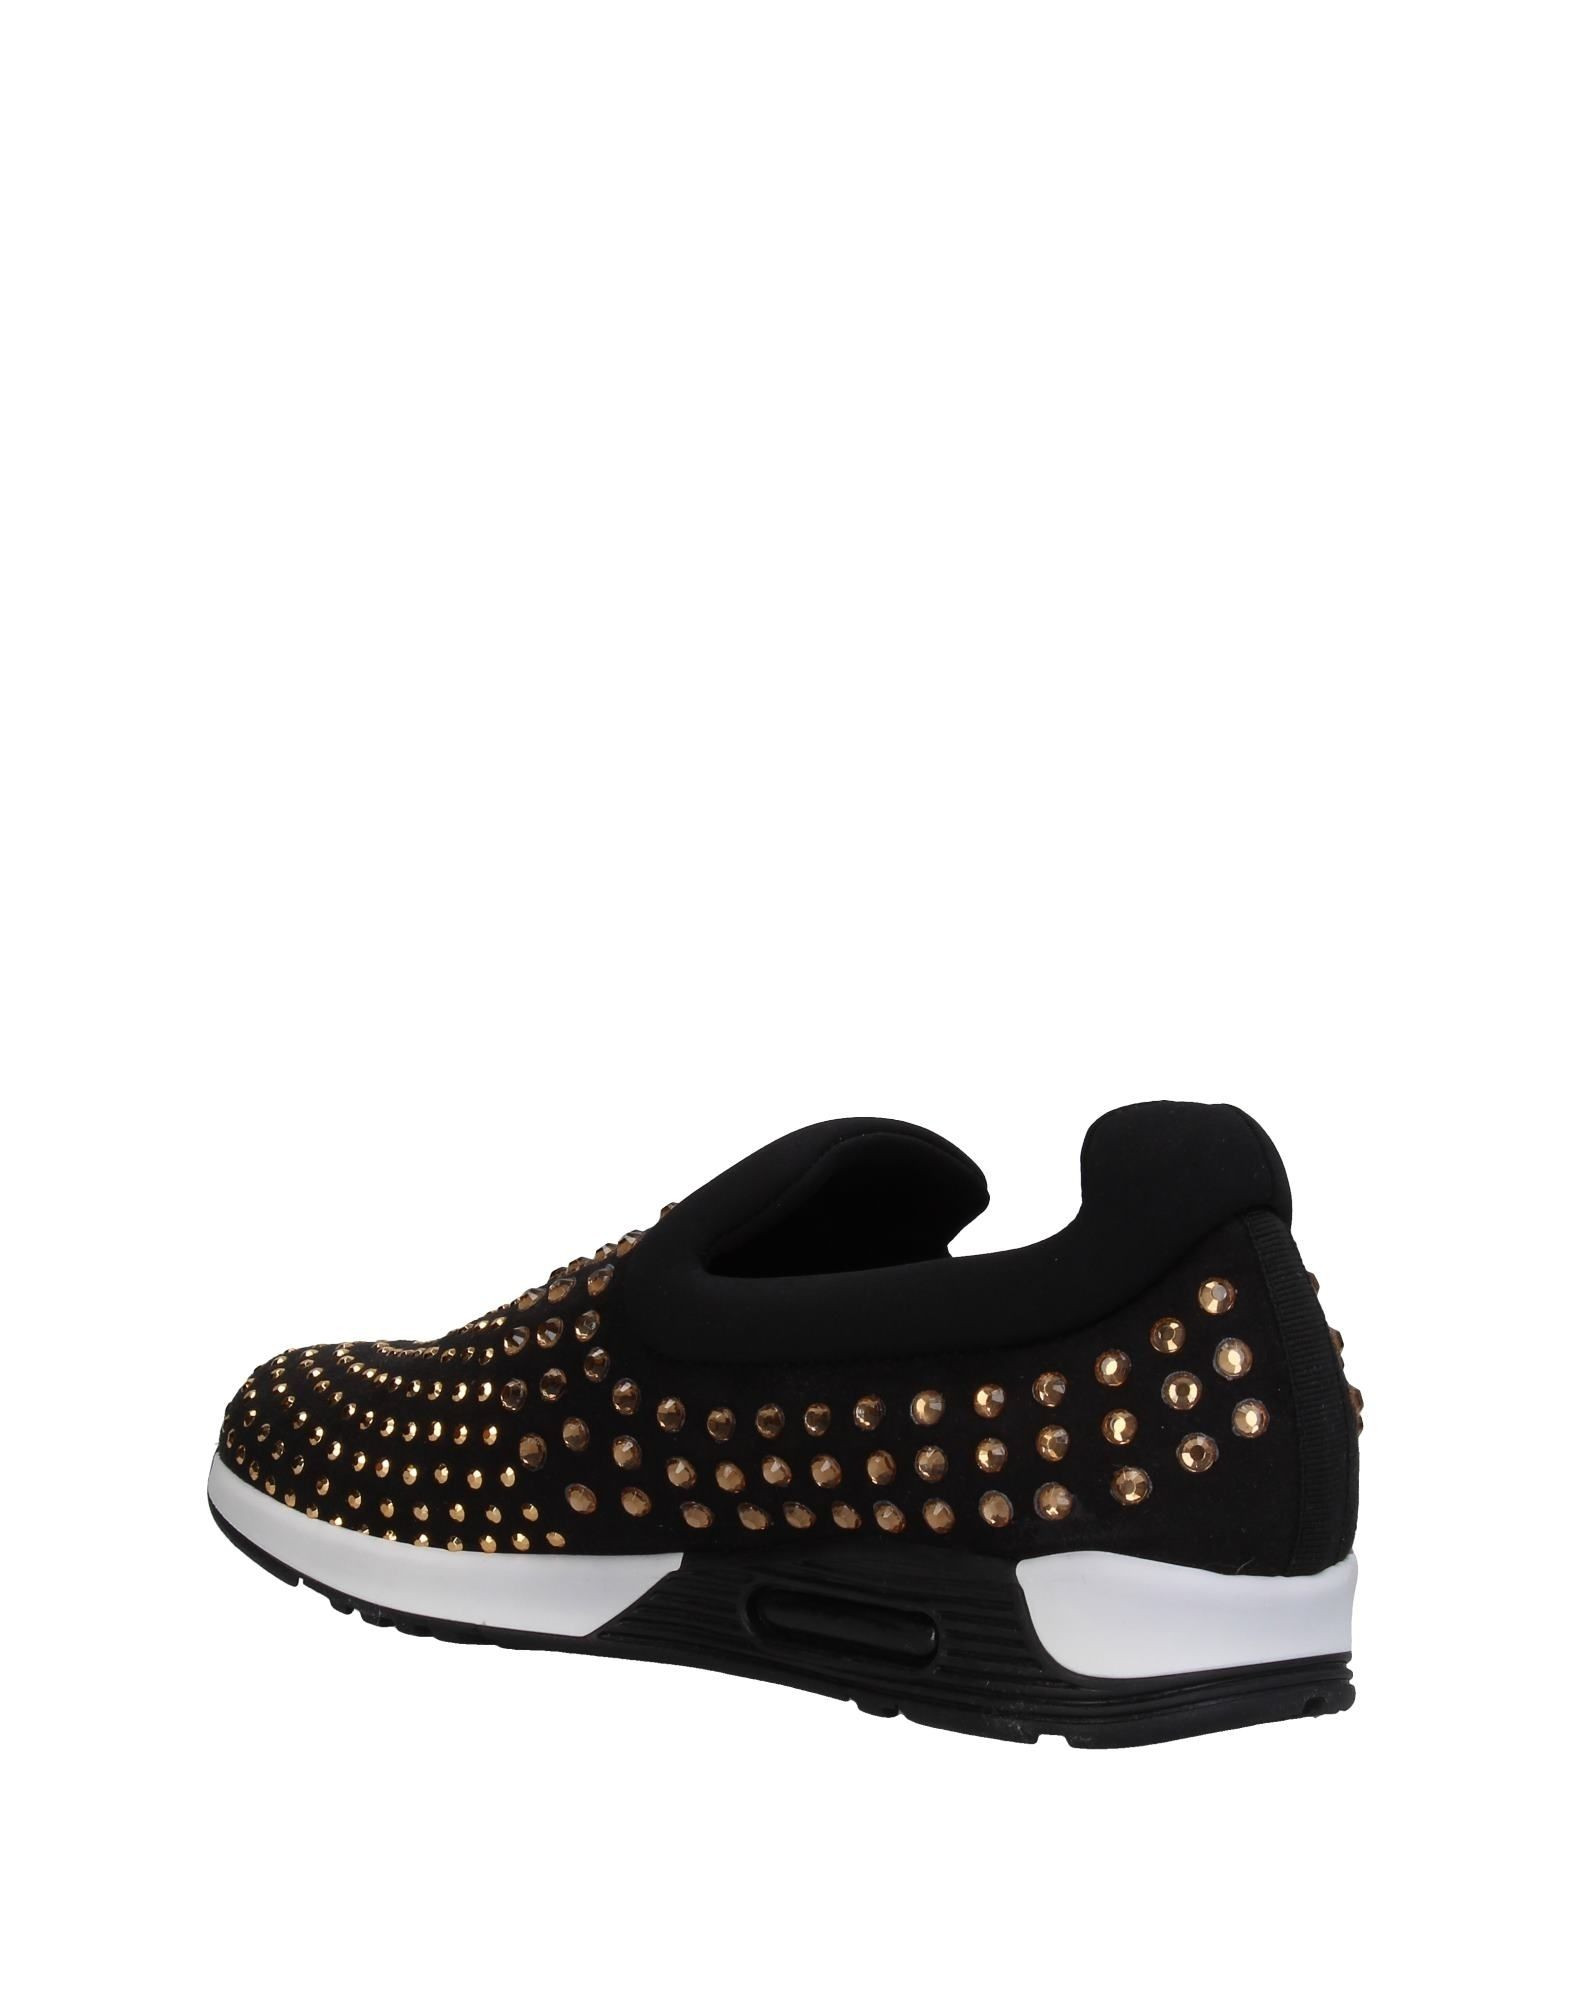 Sneakers No Limits Femme - Sneakers No Limits sur